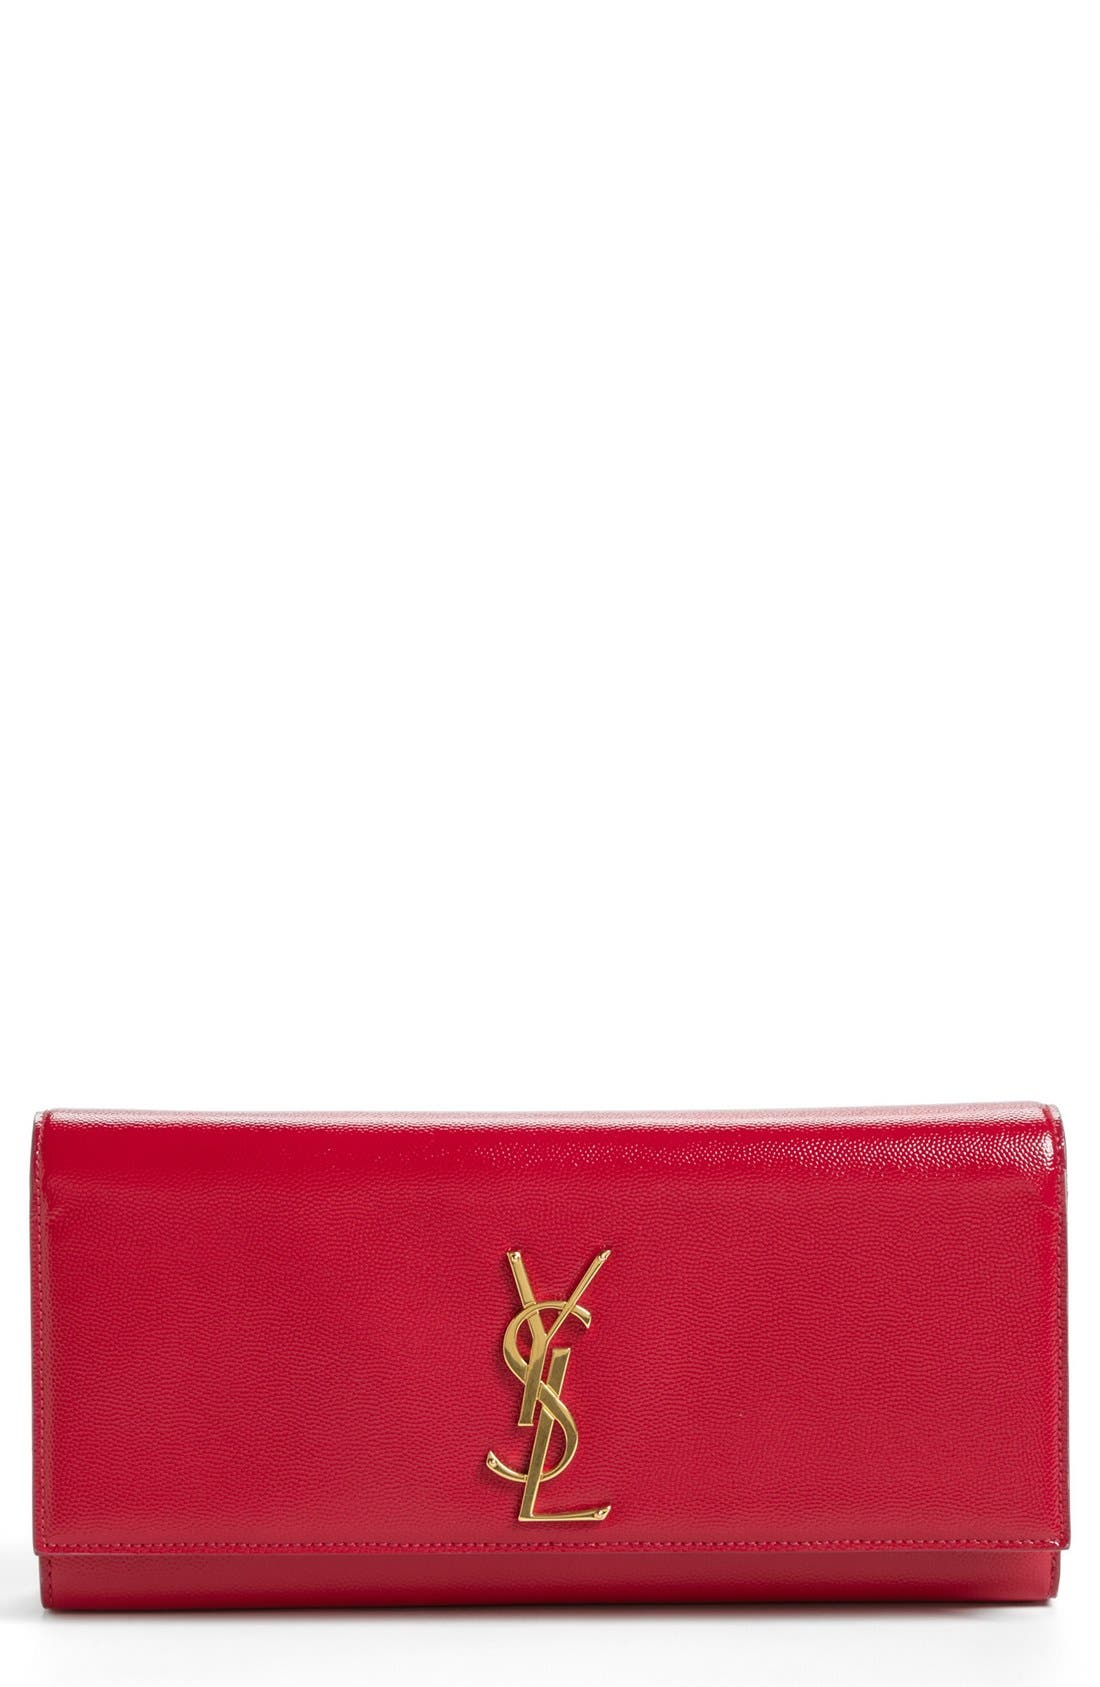 Alternate Image 1 Selected - Saint Laurent 'Cassandre - Vernis' Leather Clutch